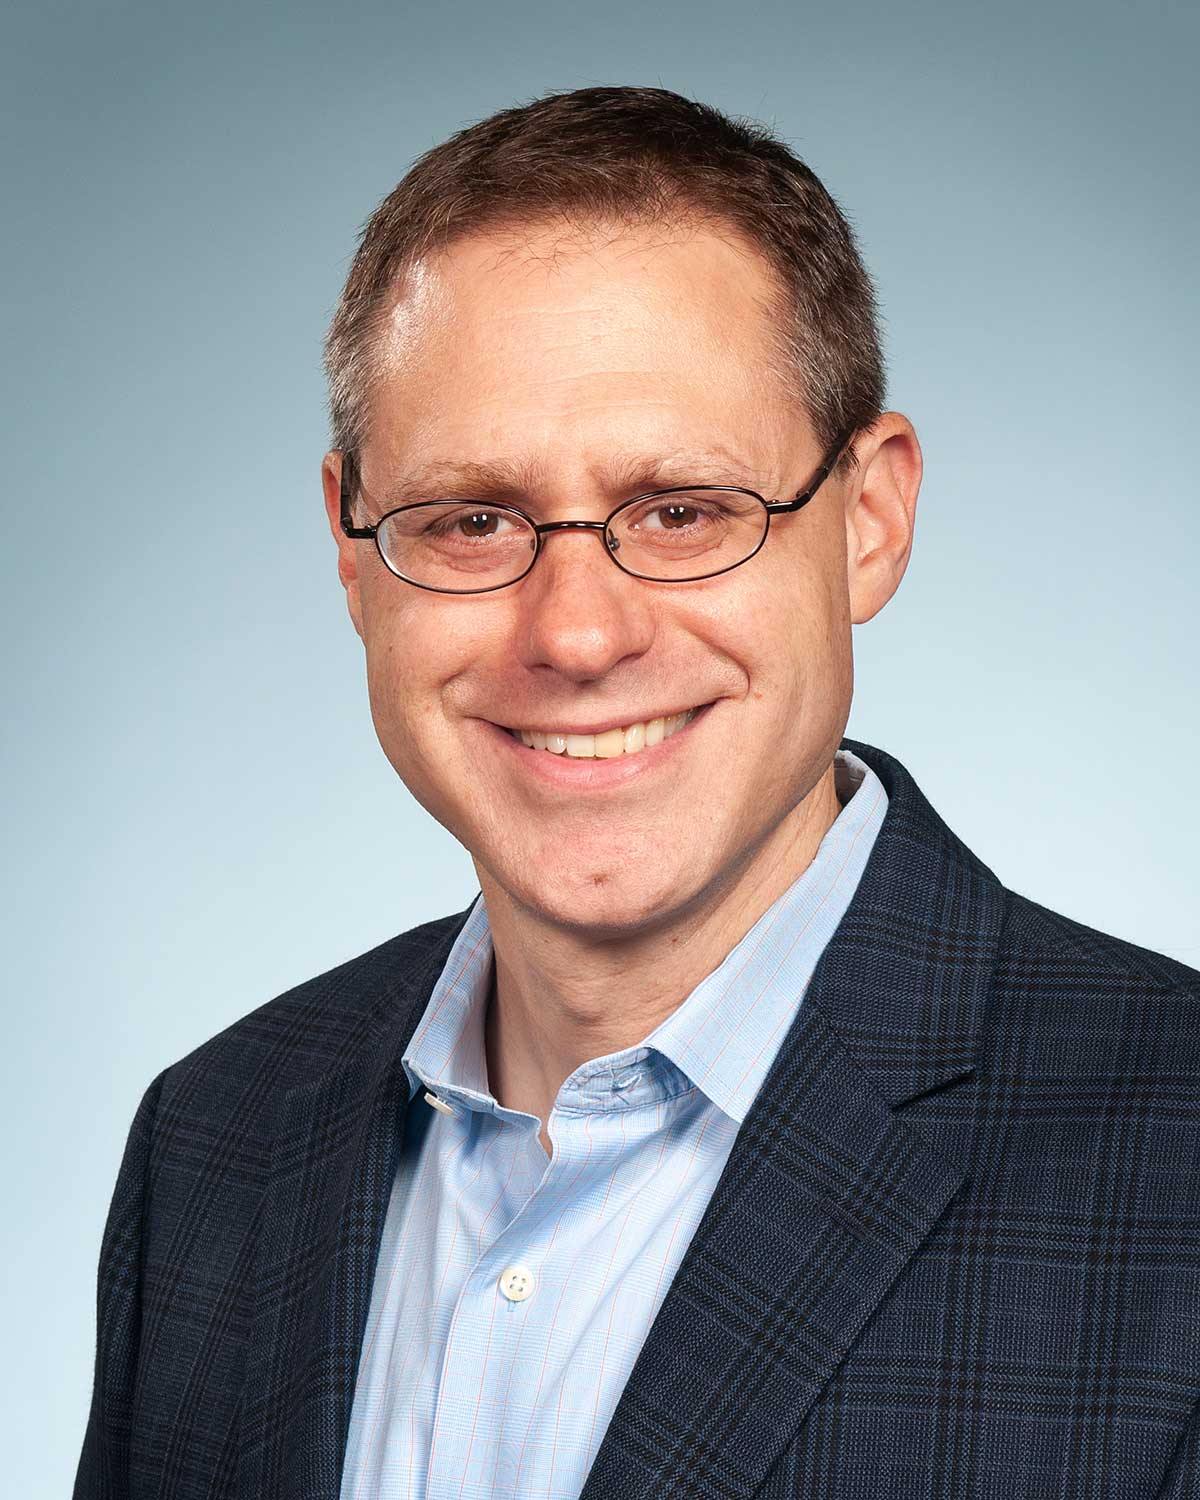 Professional headshot photo of Michael Srulevich, DO, MPH